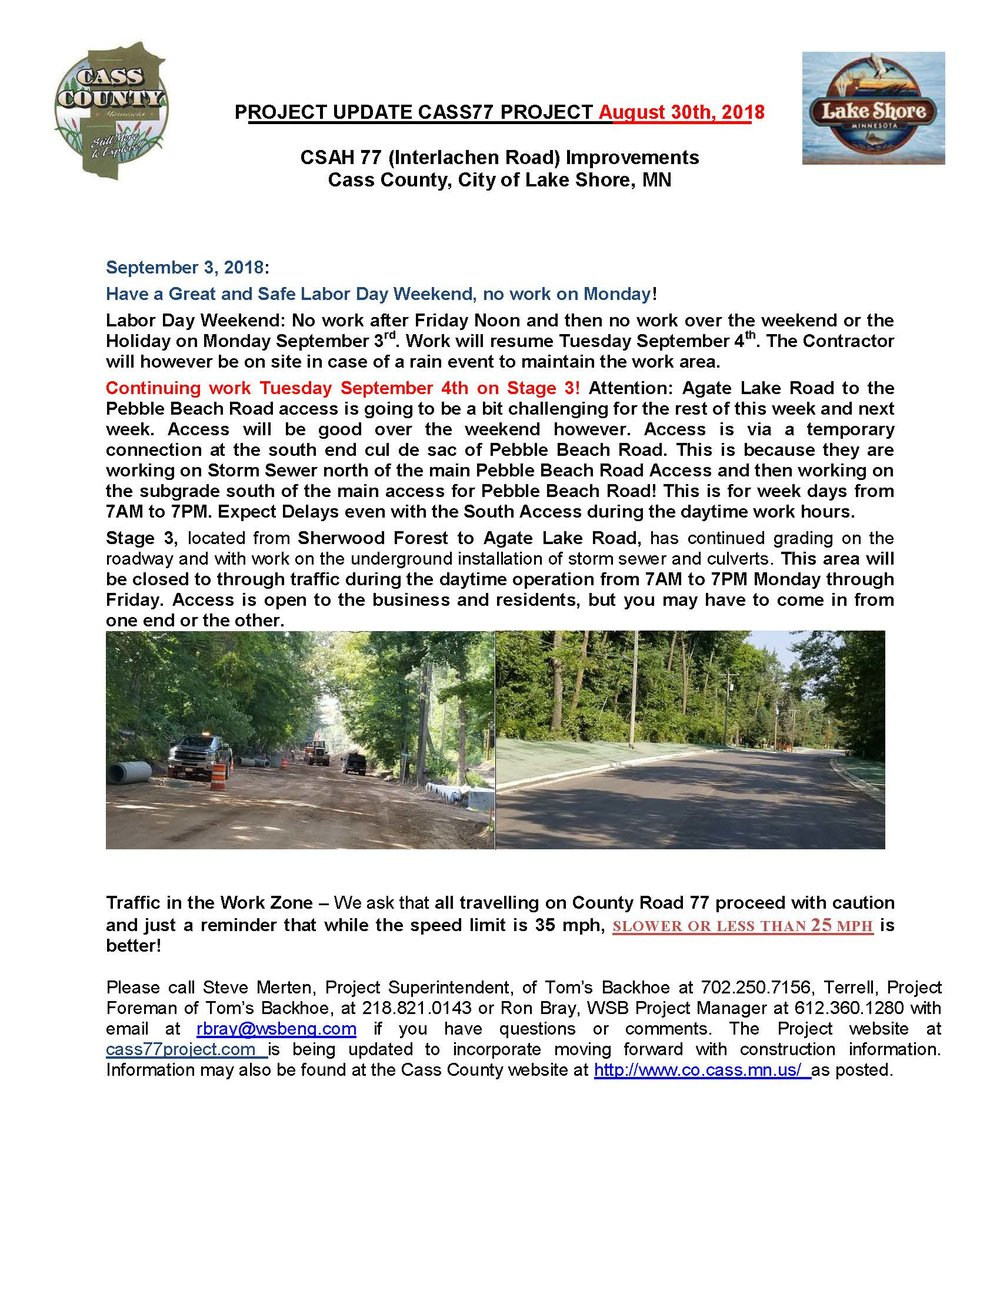 Cass County CSAH 77 Project update August 30th 2018.jpg